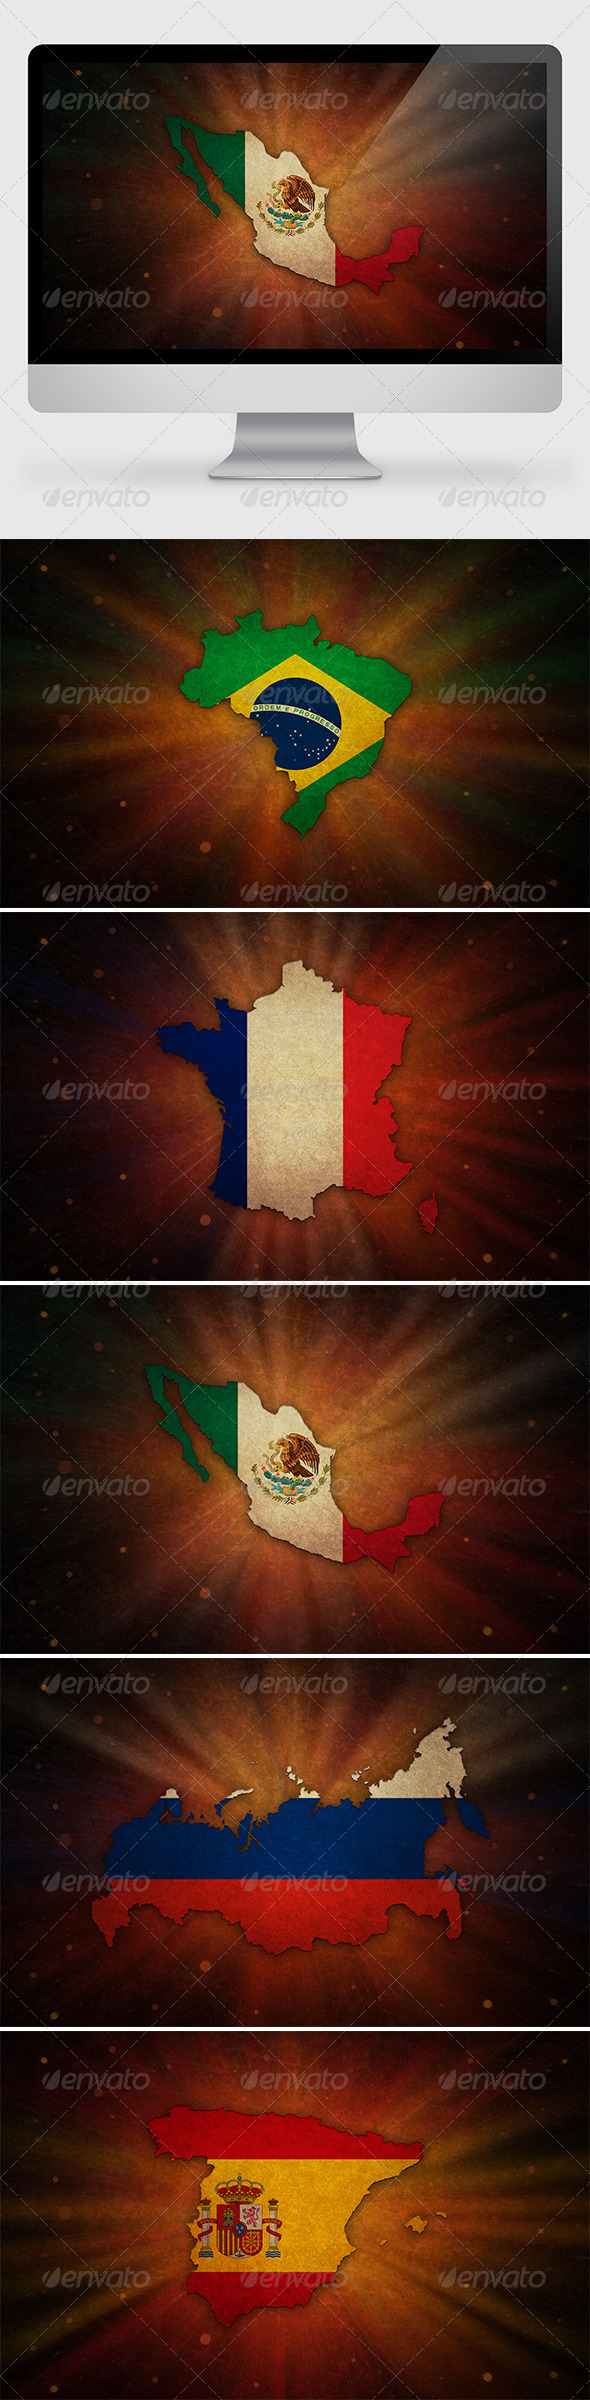 GraphicRiver 5 Countries Backgrounds 2 7173373